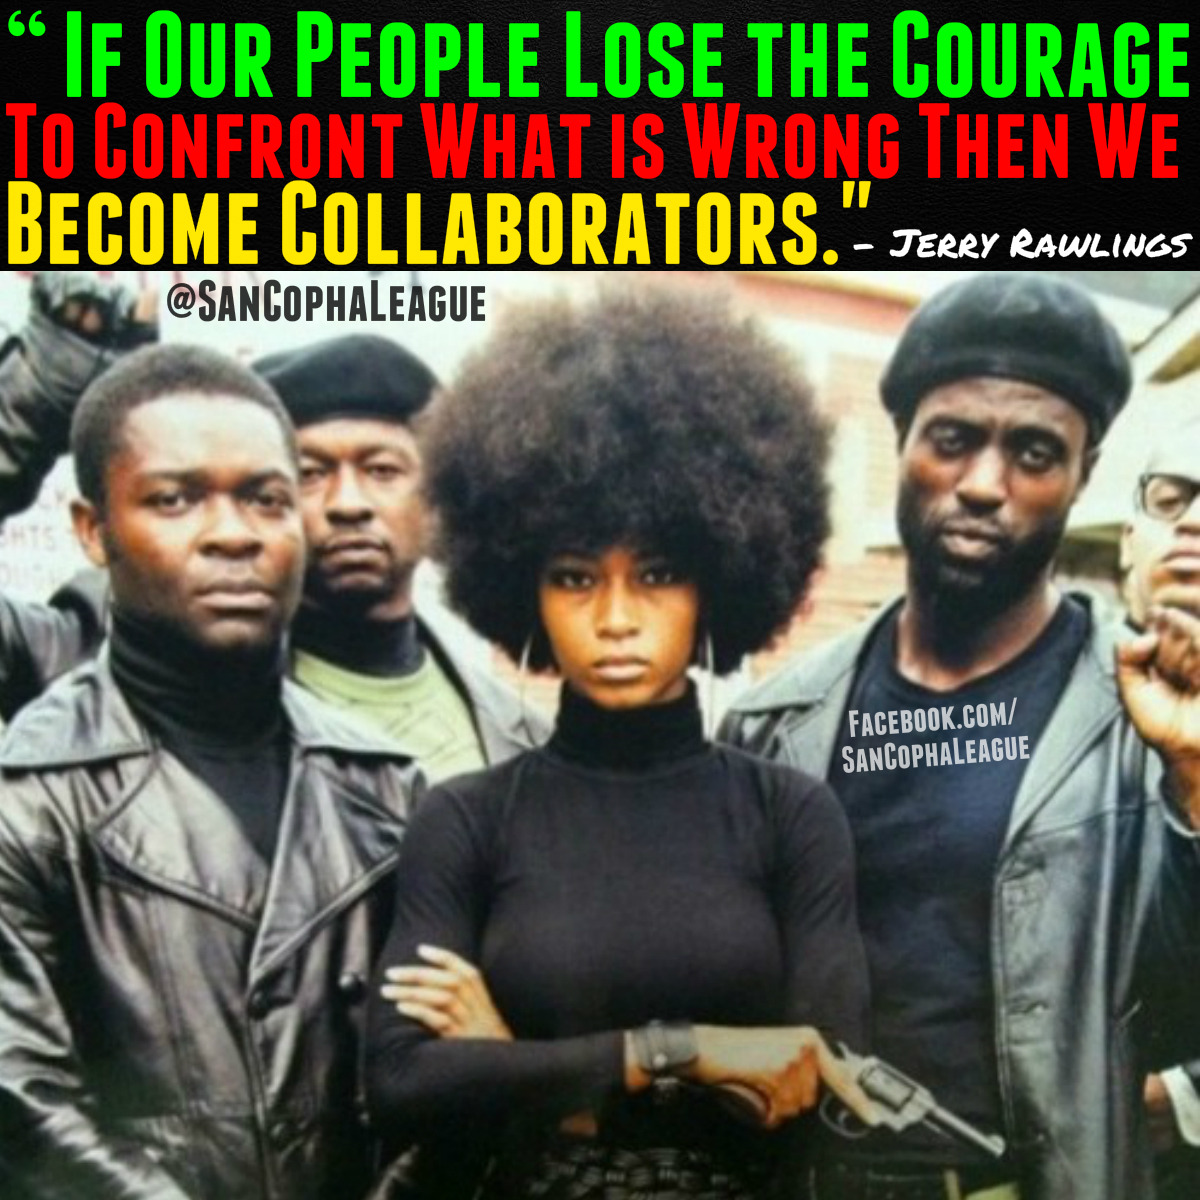 There is way too much work that needs to be done by our people in order to change the way things are in Black Communities around the world for any of us to be afraid to address the issues. You are only aiding in the Racism and Discrimination towards us if you choosing a complacent or cowards path instead of confronting the problems.  Written By: @Champion_Us